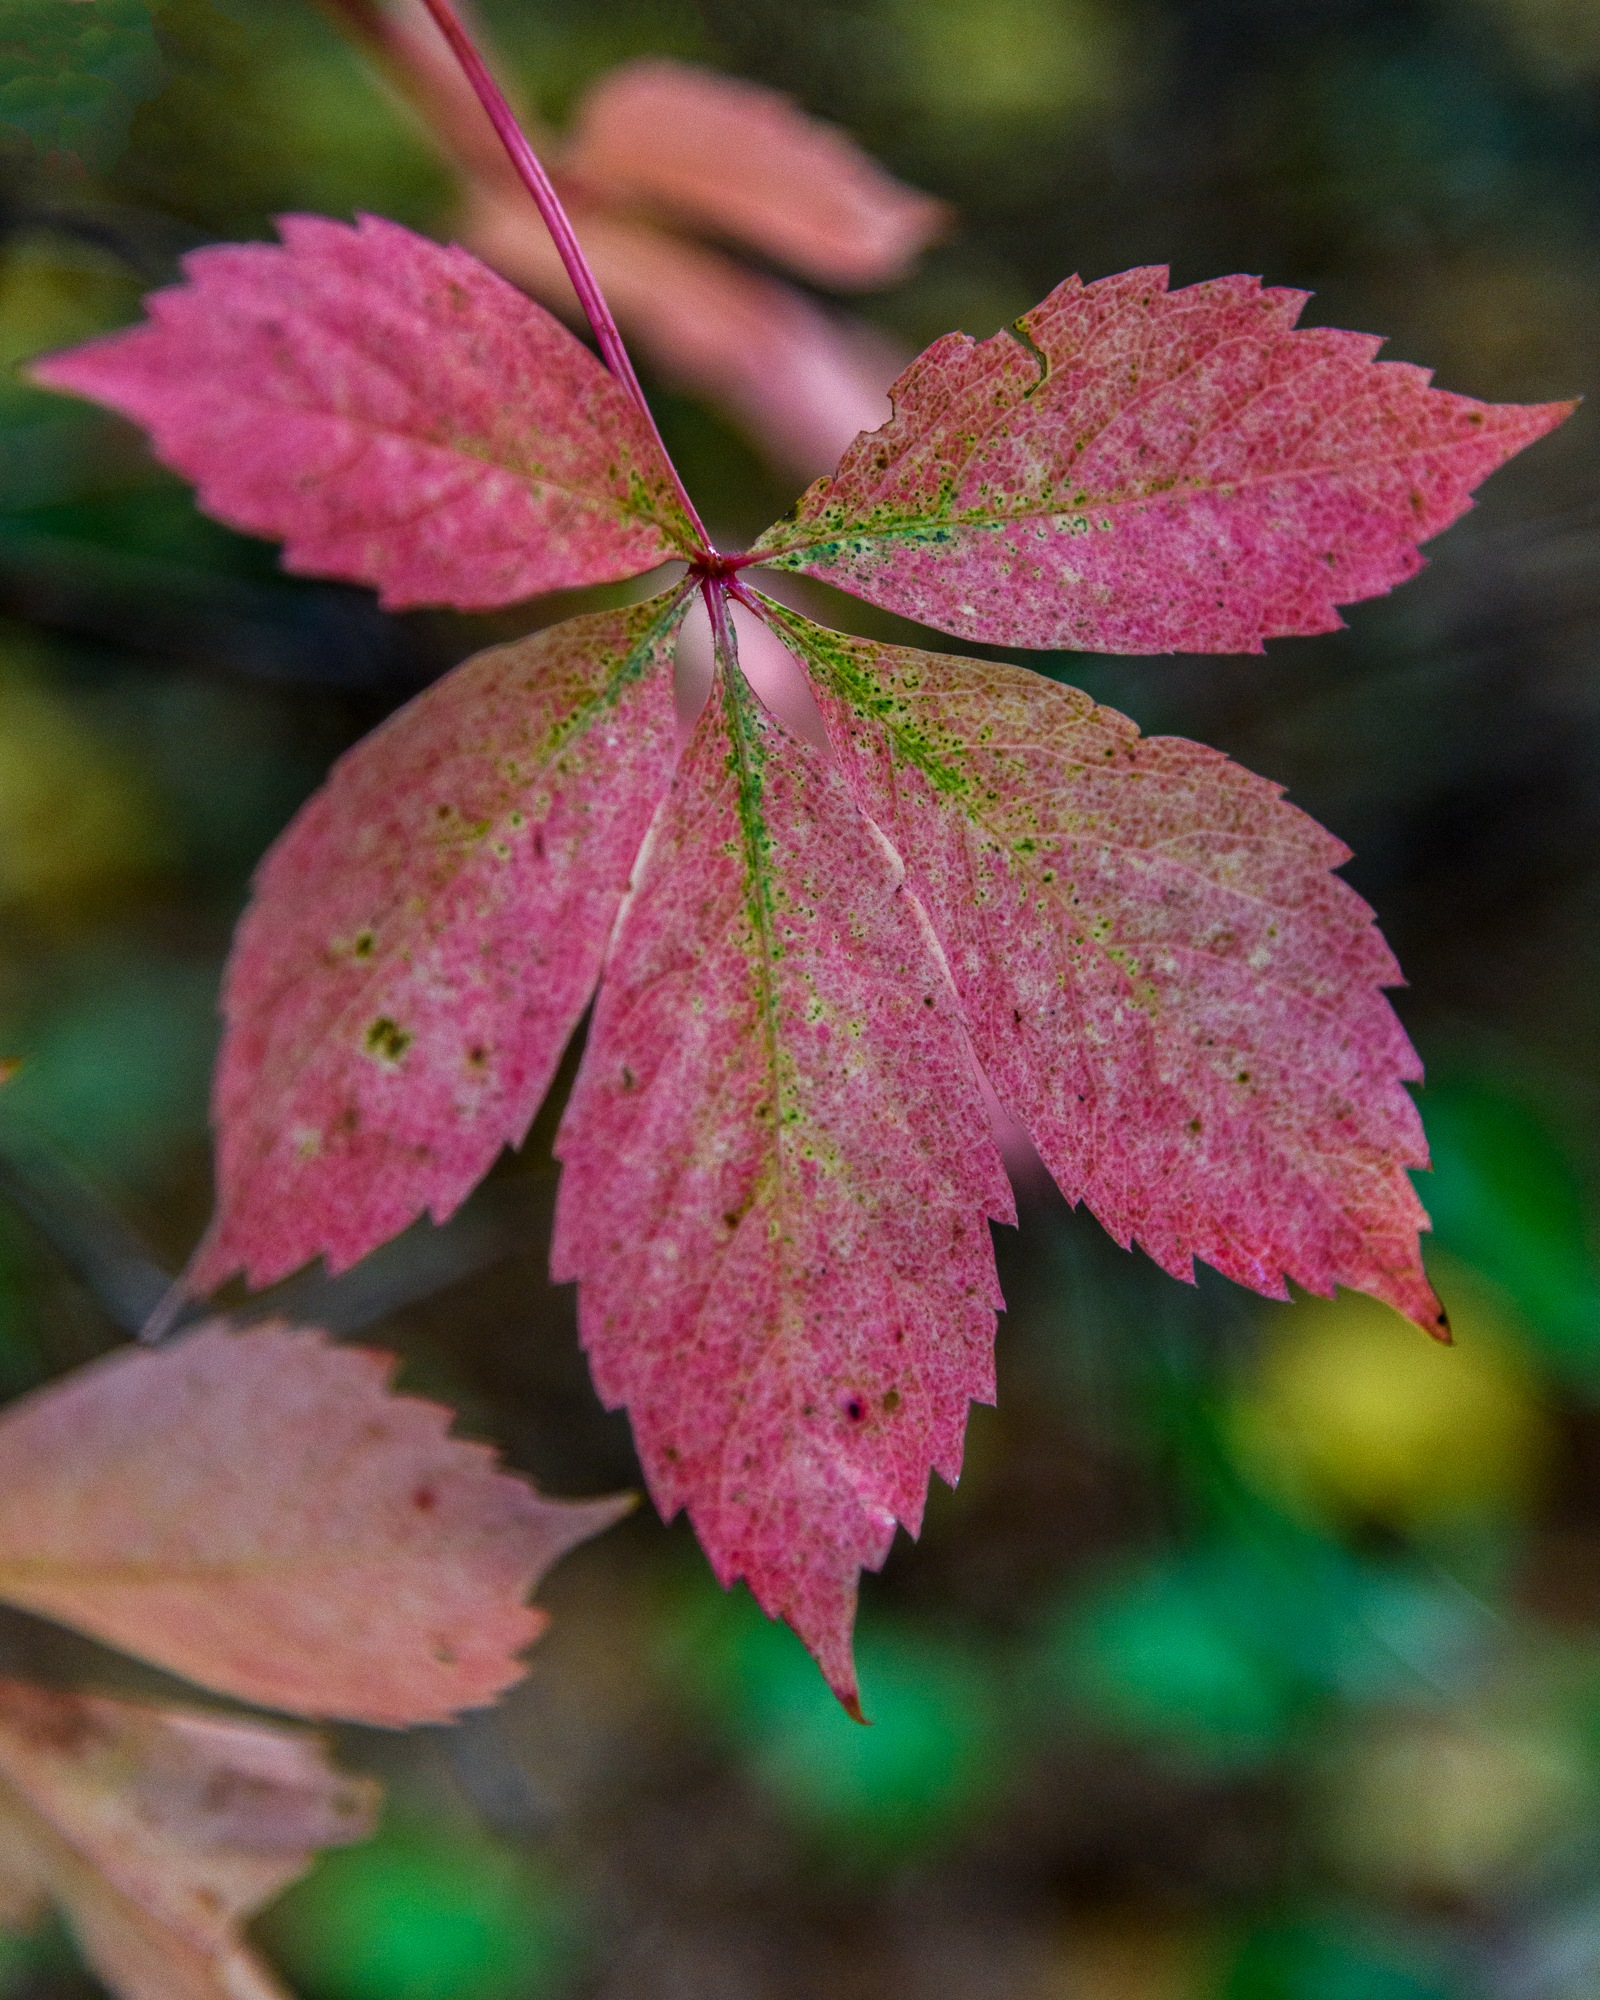 Colors of Fall #1 by Steve Director